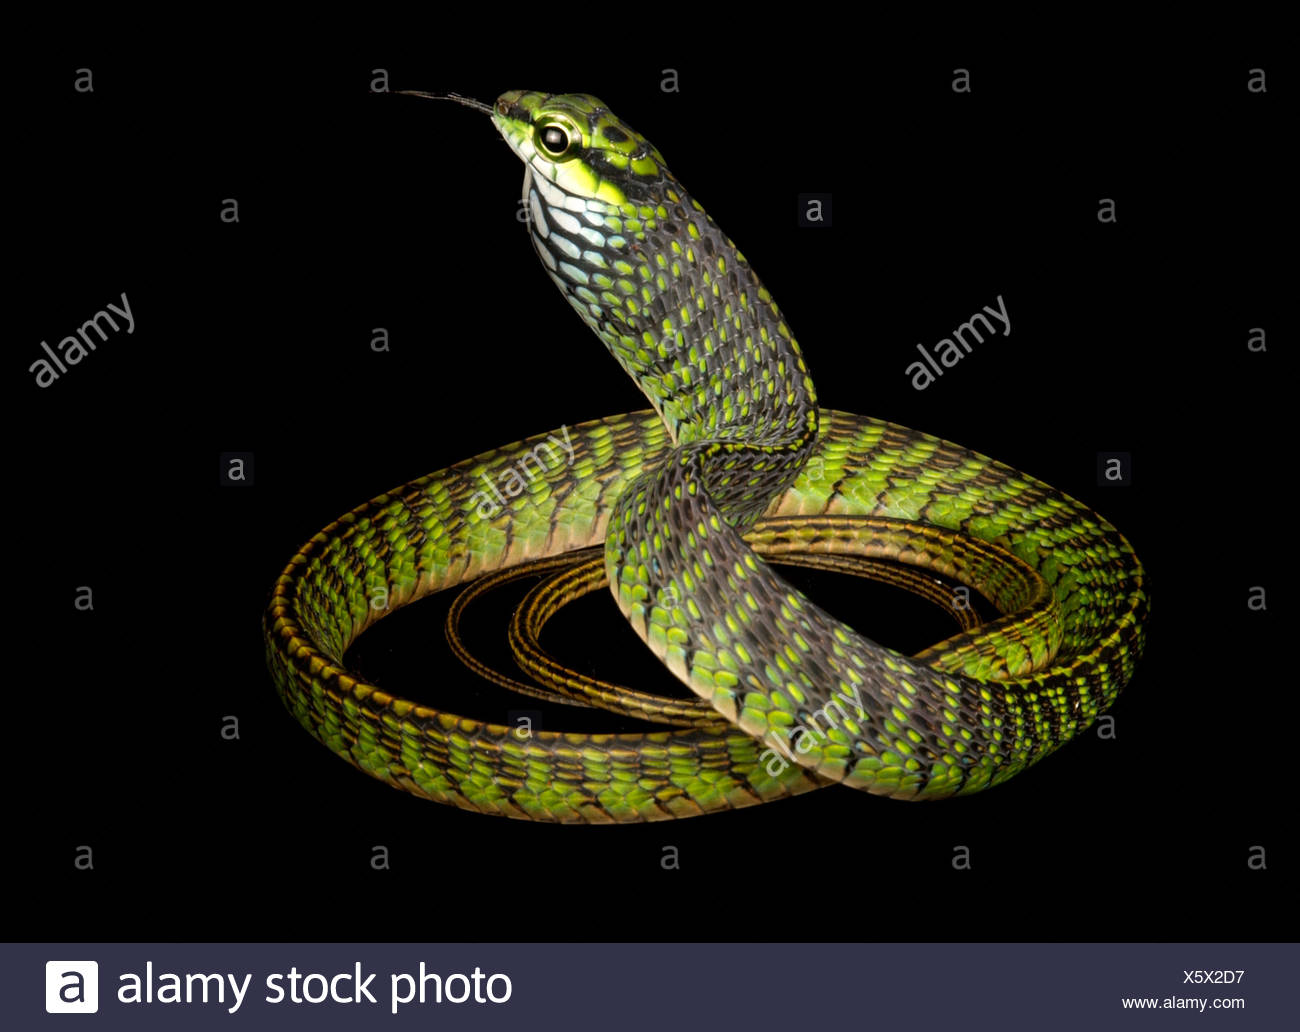 A Large-eyed green tree snake, Rhamnophis aethiopissa. - Stock Image